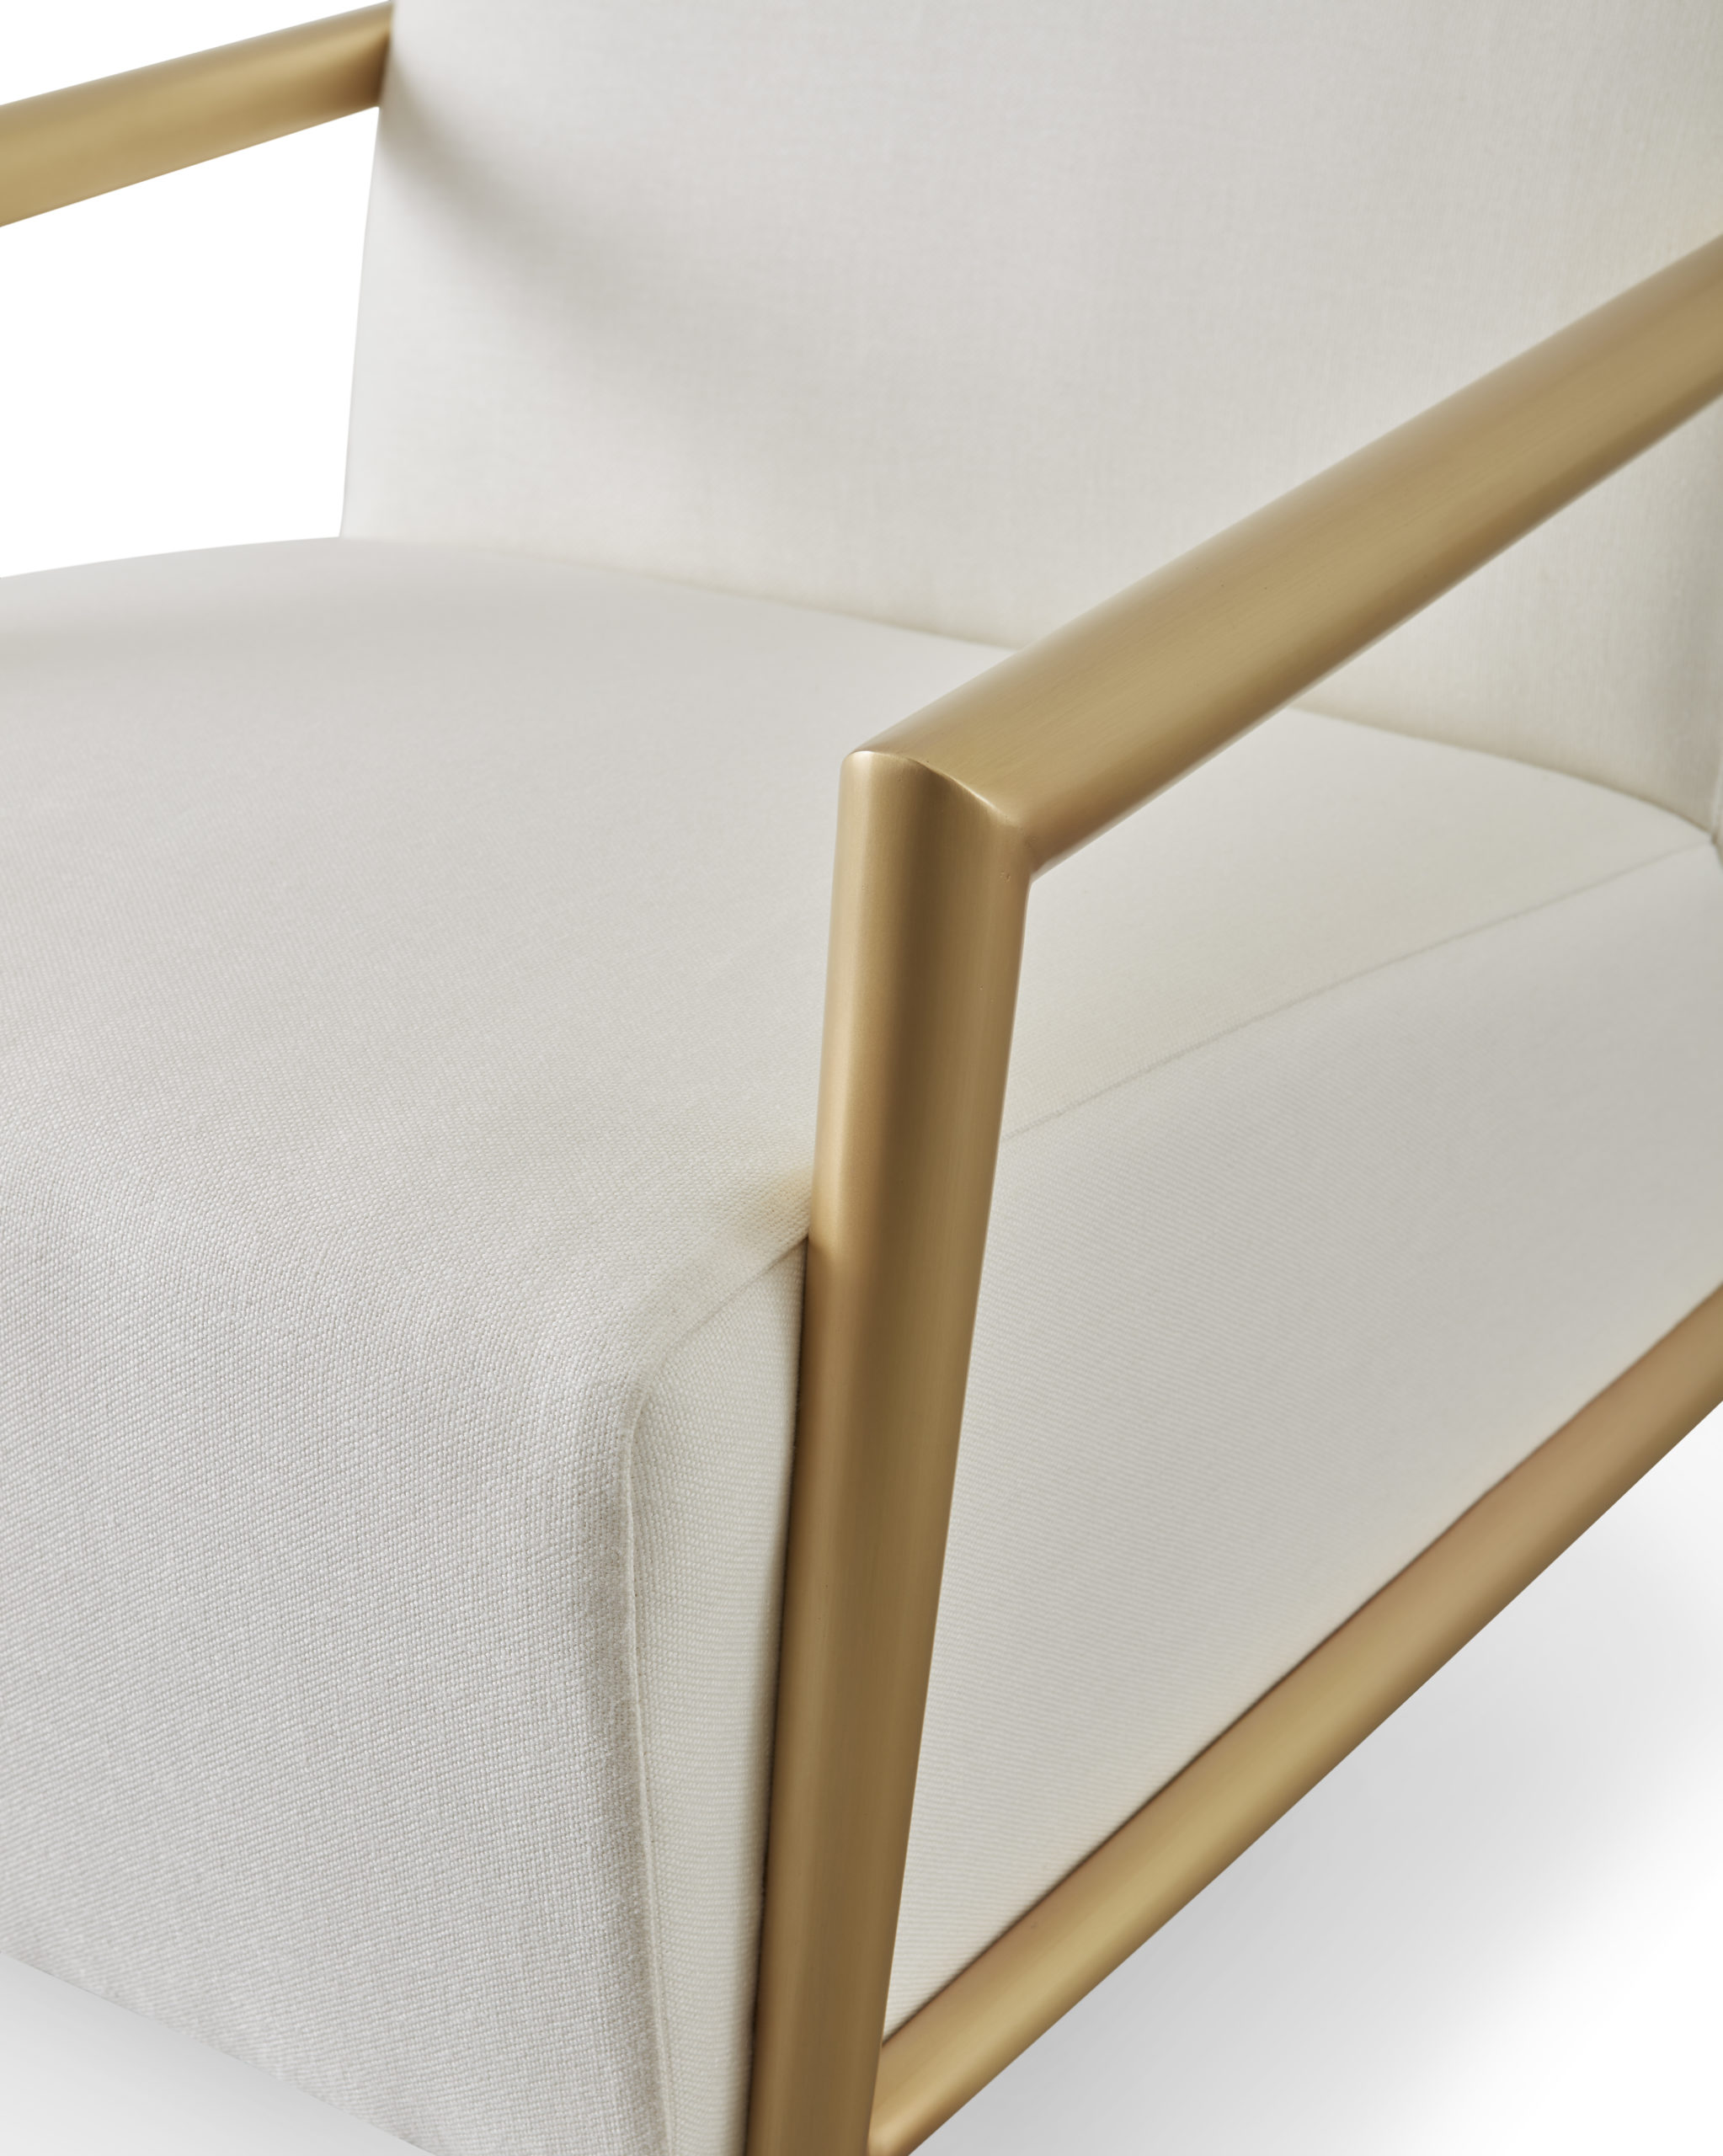 Baker_products_WNWN_enzo_lounge_chair_BAU3104c_DETAIL-scaled-1